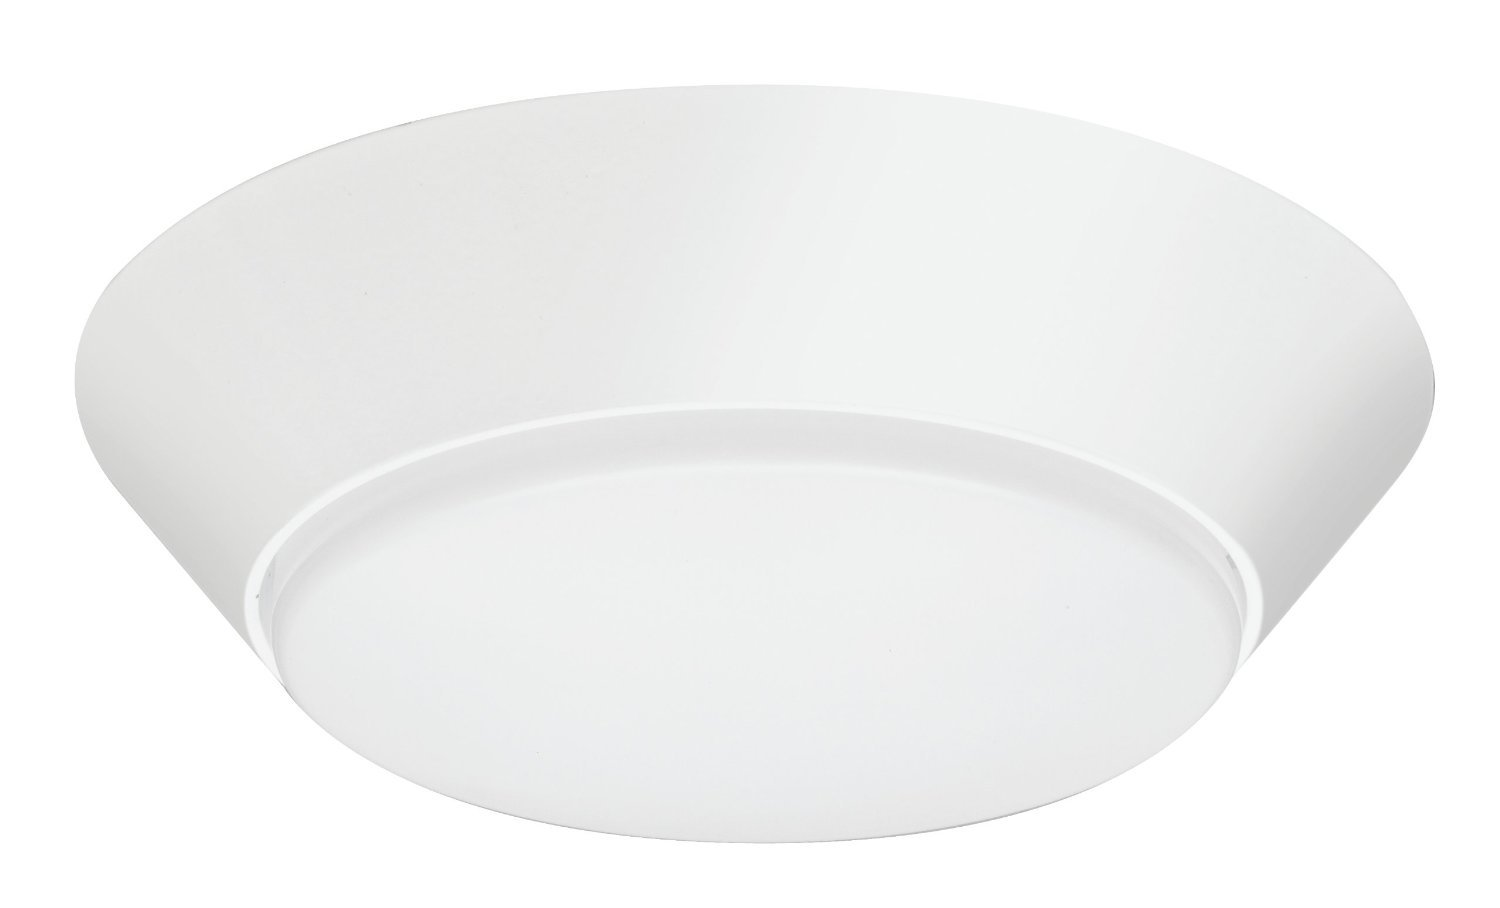 Lithonia Lighting Contractor Select 7 inch Round LED Flush Mount Thin Ceiling Light White 4000K Dimmable